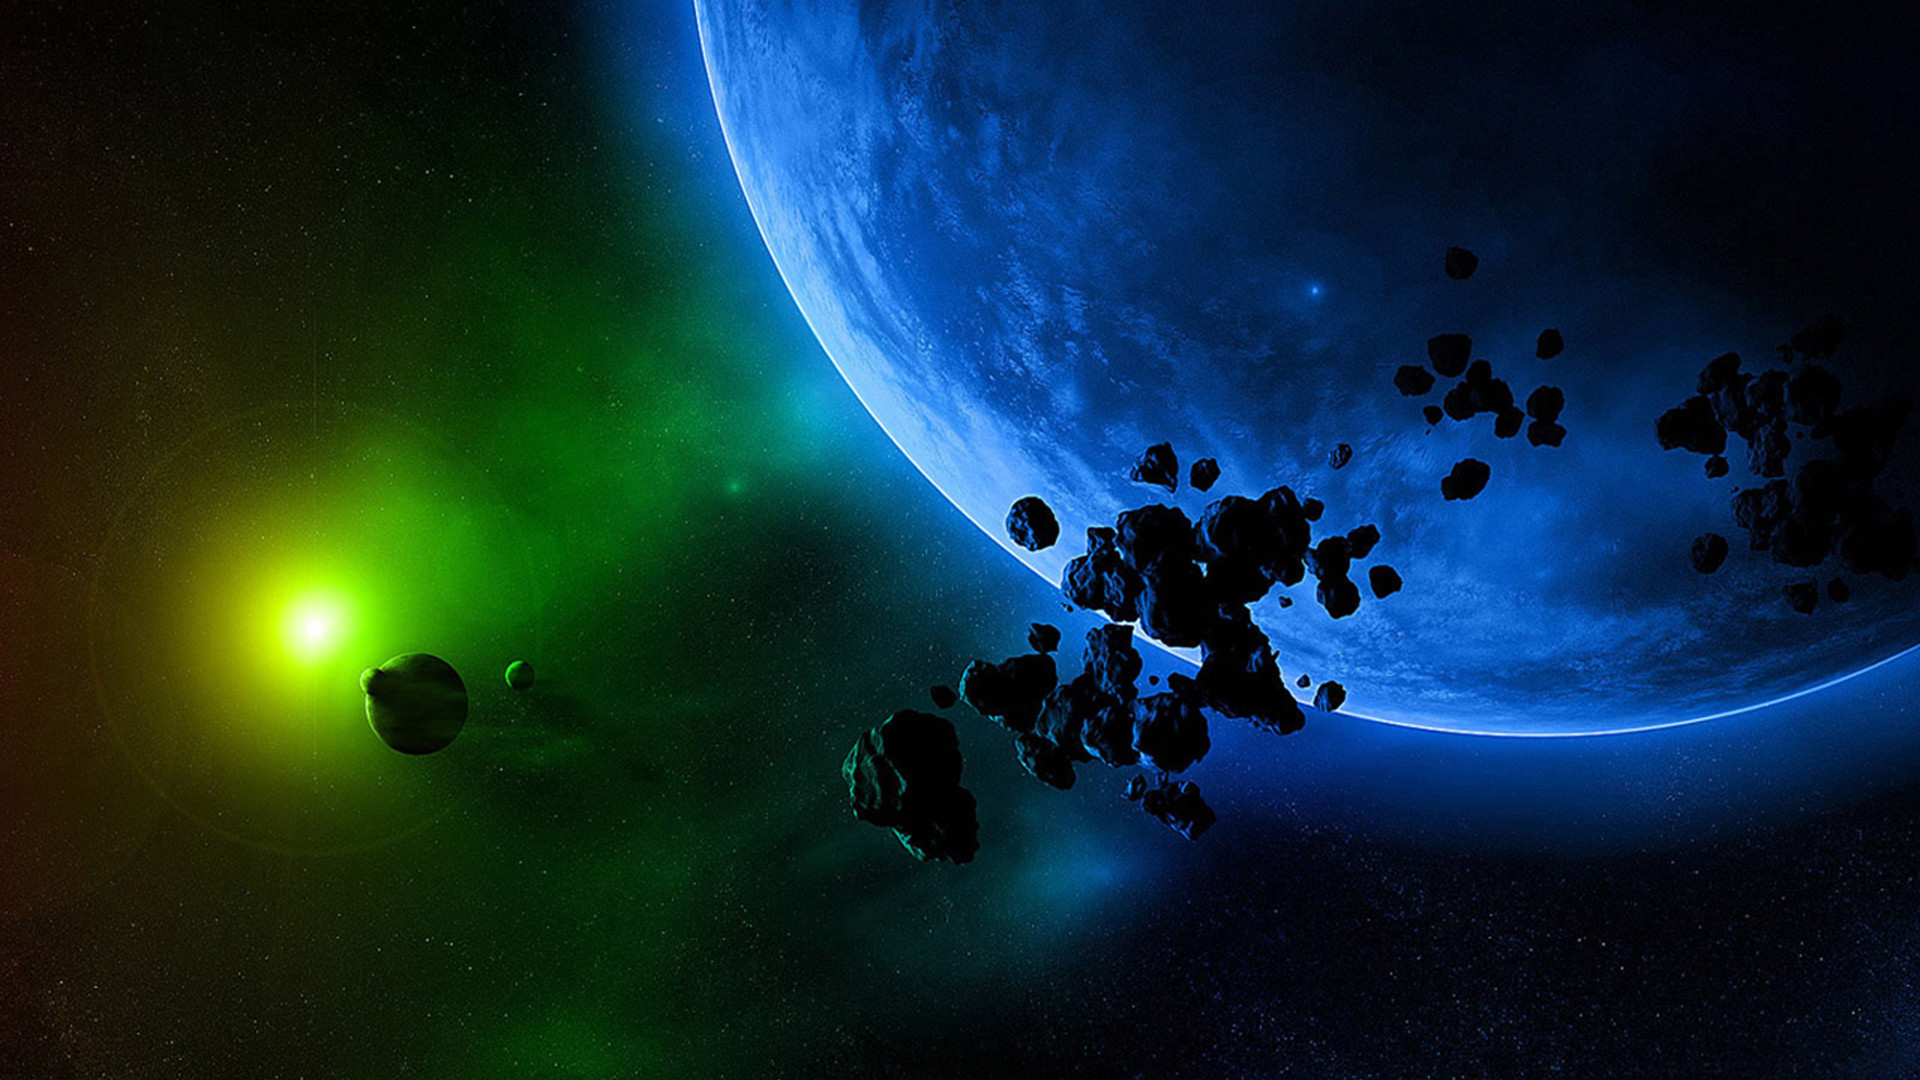 Res: 1920x1080, Green And Blue Space Hd Wallpaper